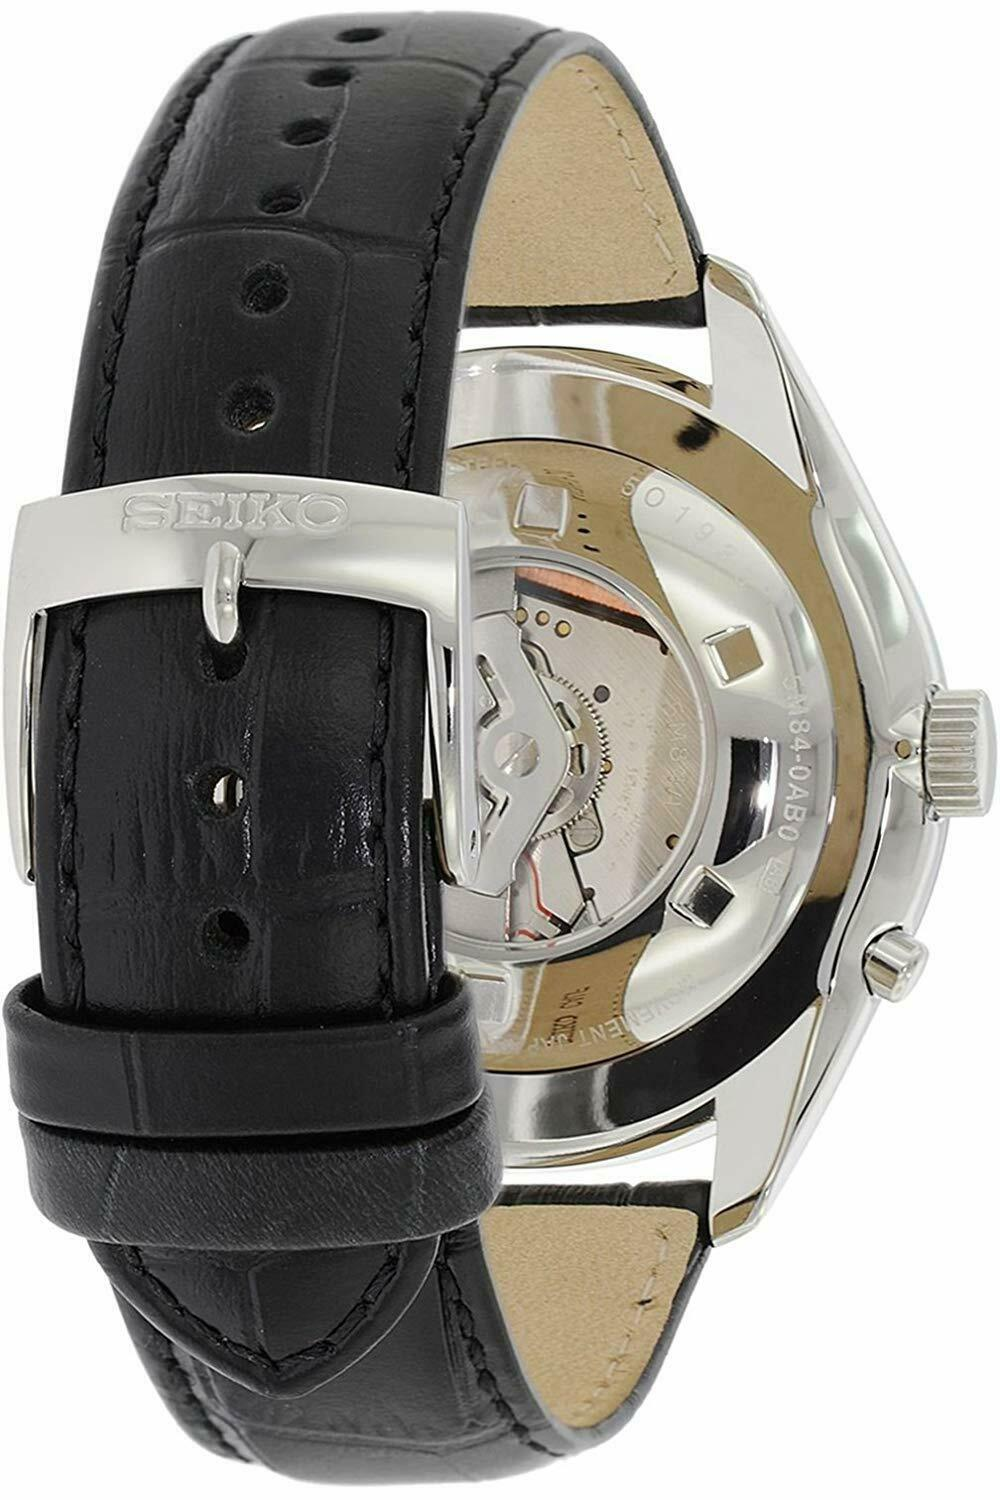 Seiko Men's SRN045P2 Kinetic Black Leather Watch